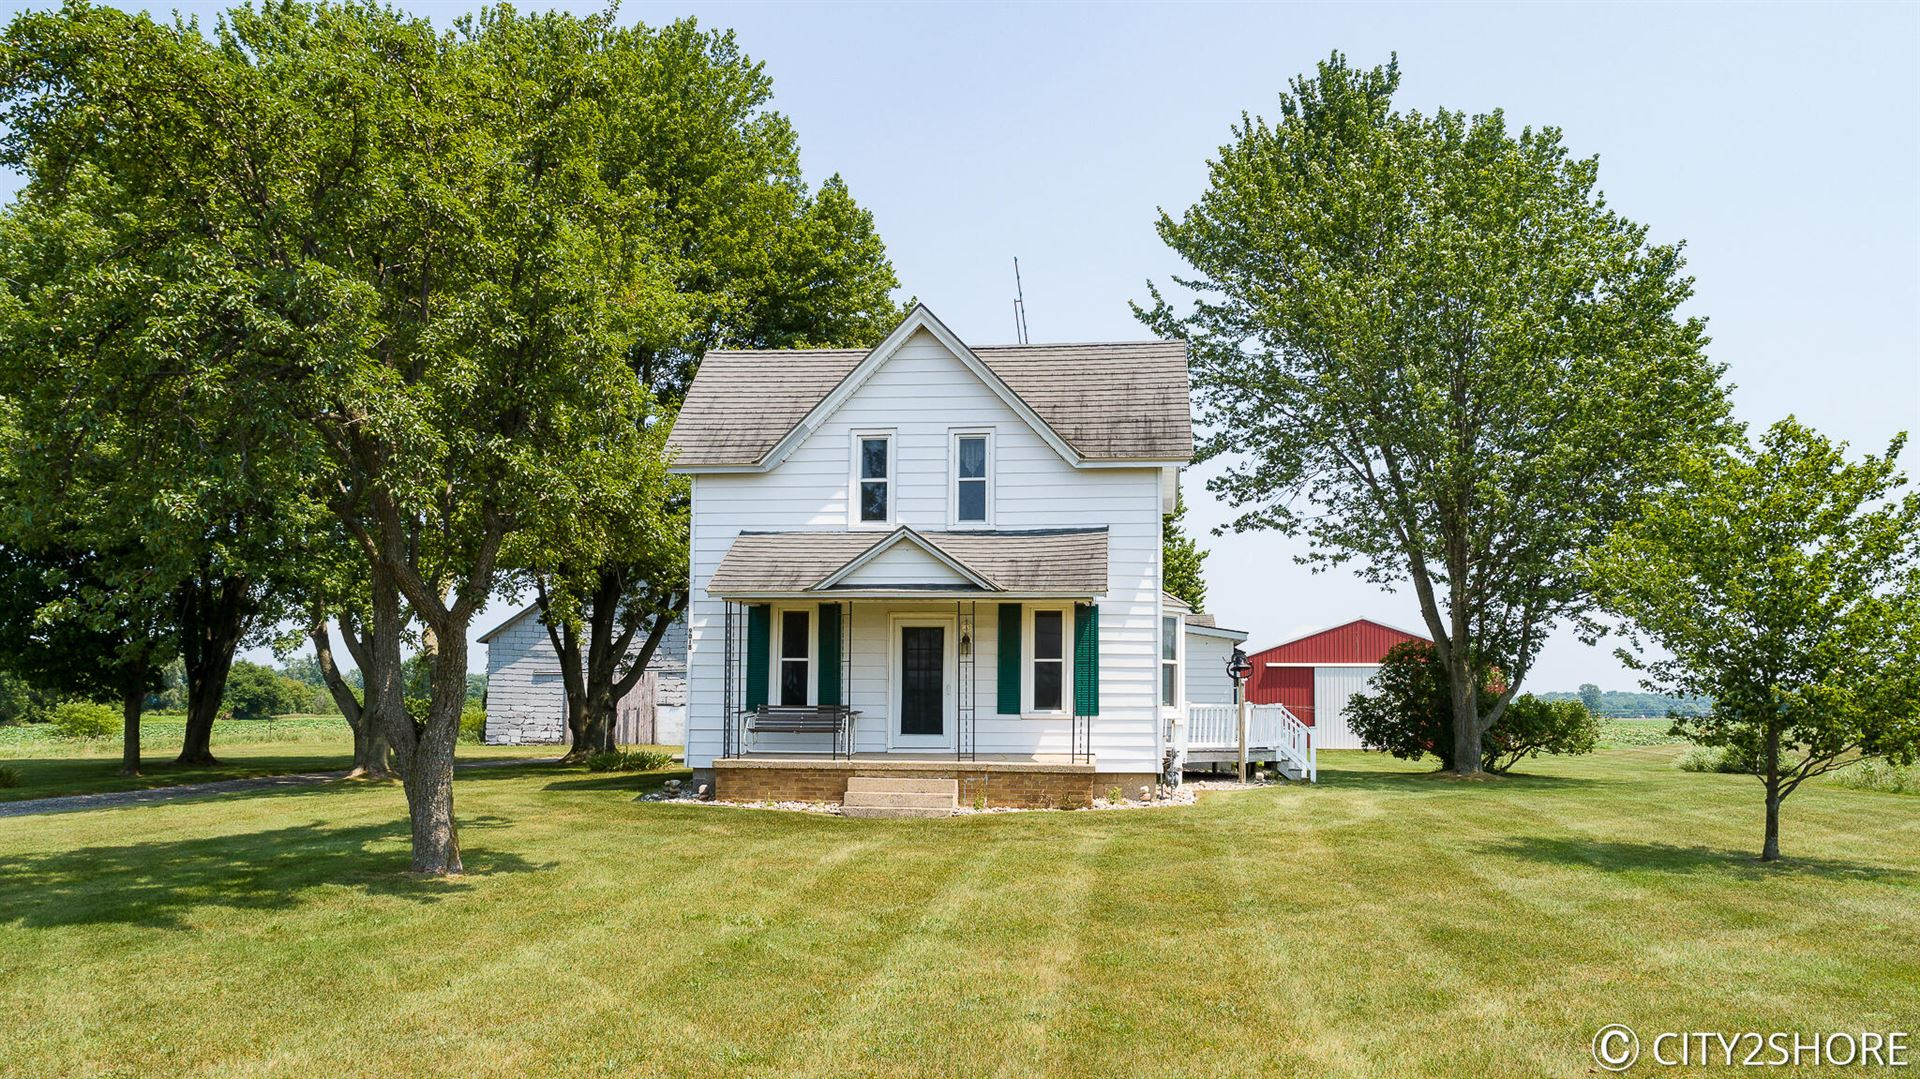 9018 72nd Avenue, Hudsonville, MI 49426 - MLS#: 21005770